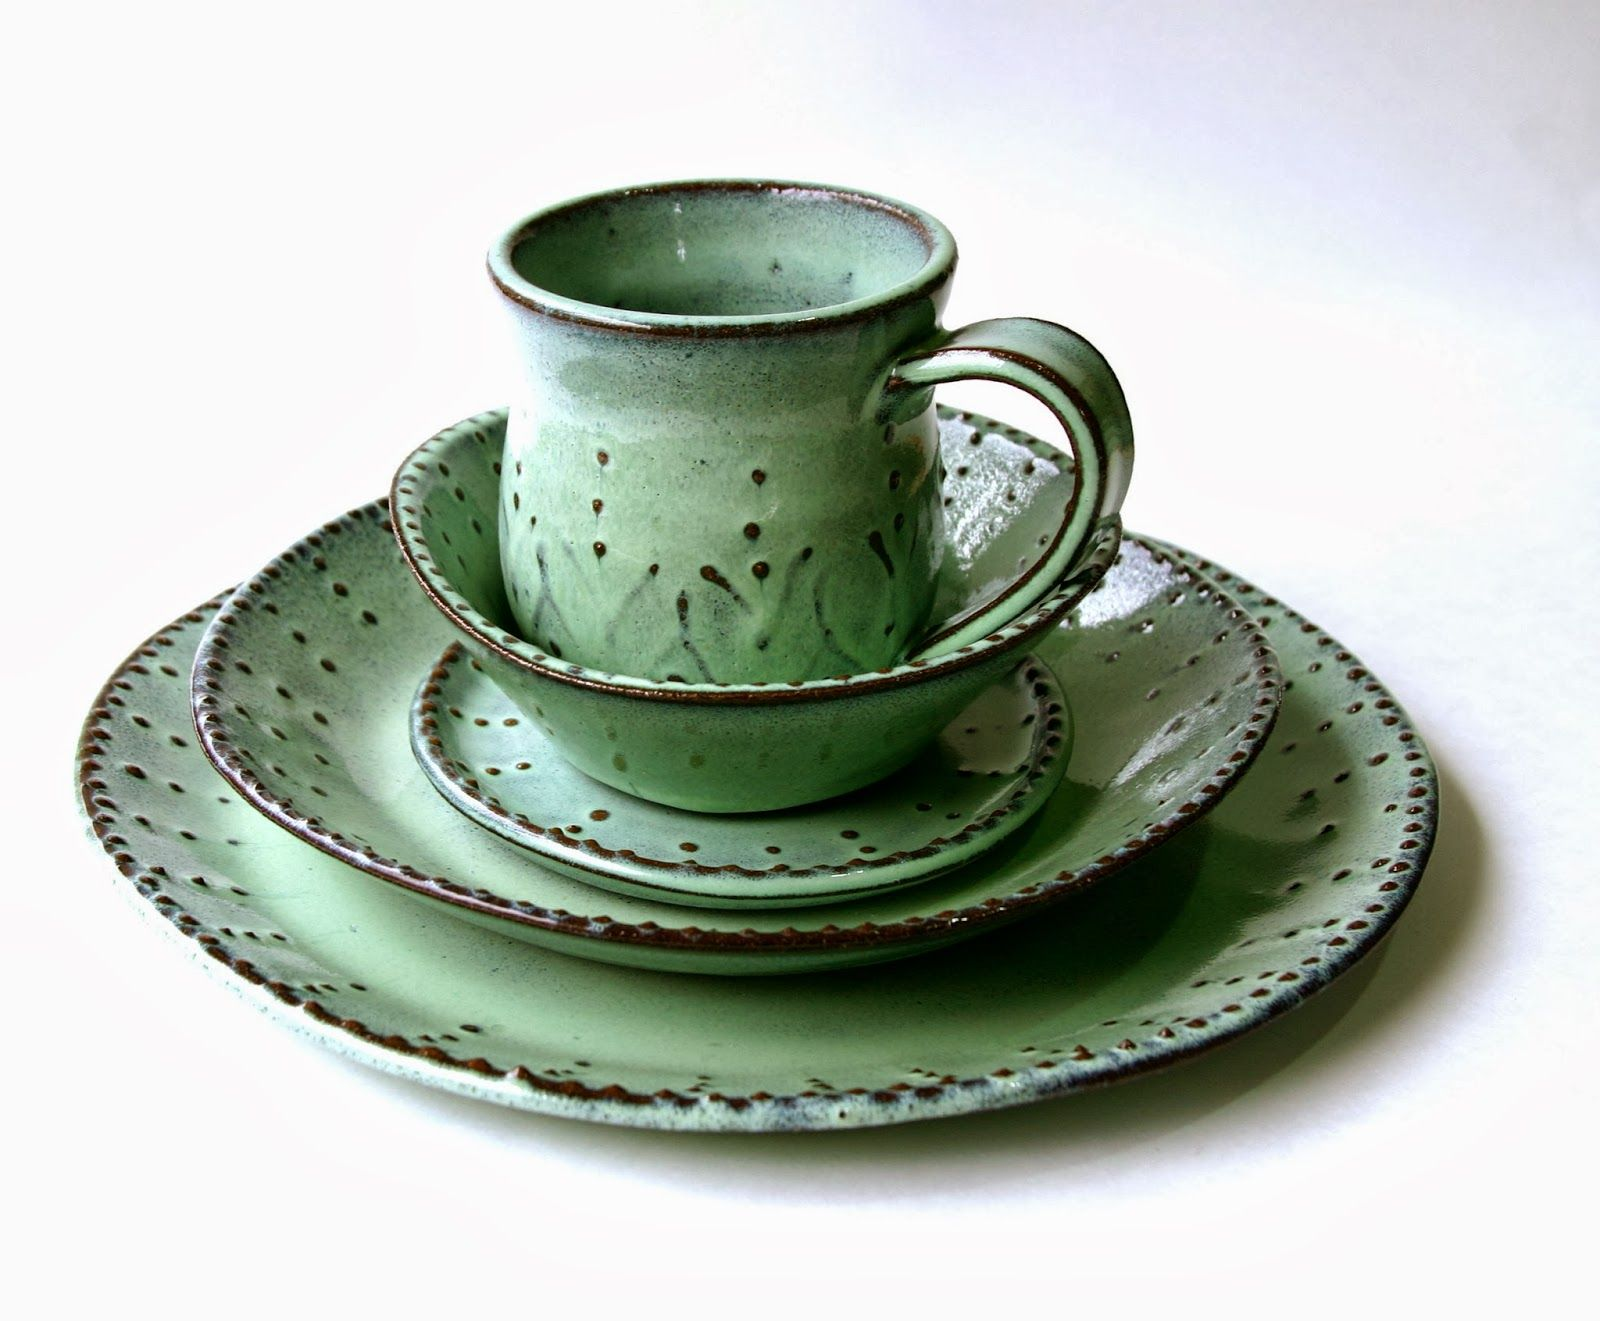 Back Bay Pottery French Country Handmade Dinnerware by Back Bay Pottery  sc 1 st  Pinterest & Back Bay Pottery: French Country Handmade Dinnerware by Back Bay ...